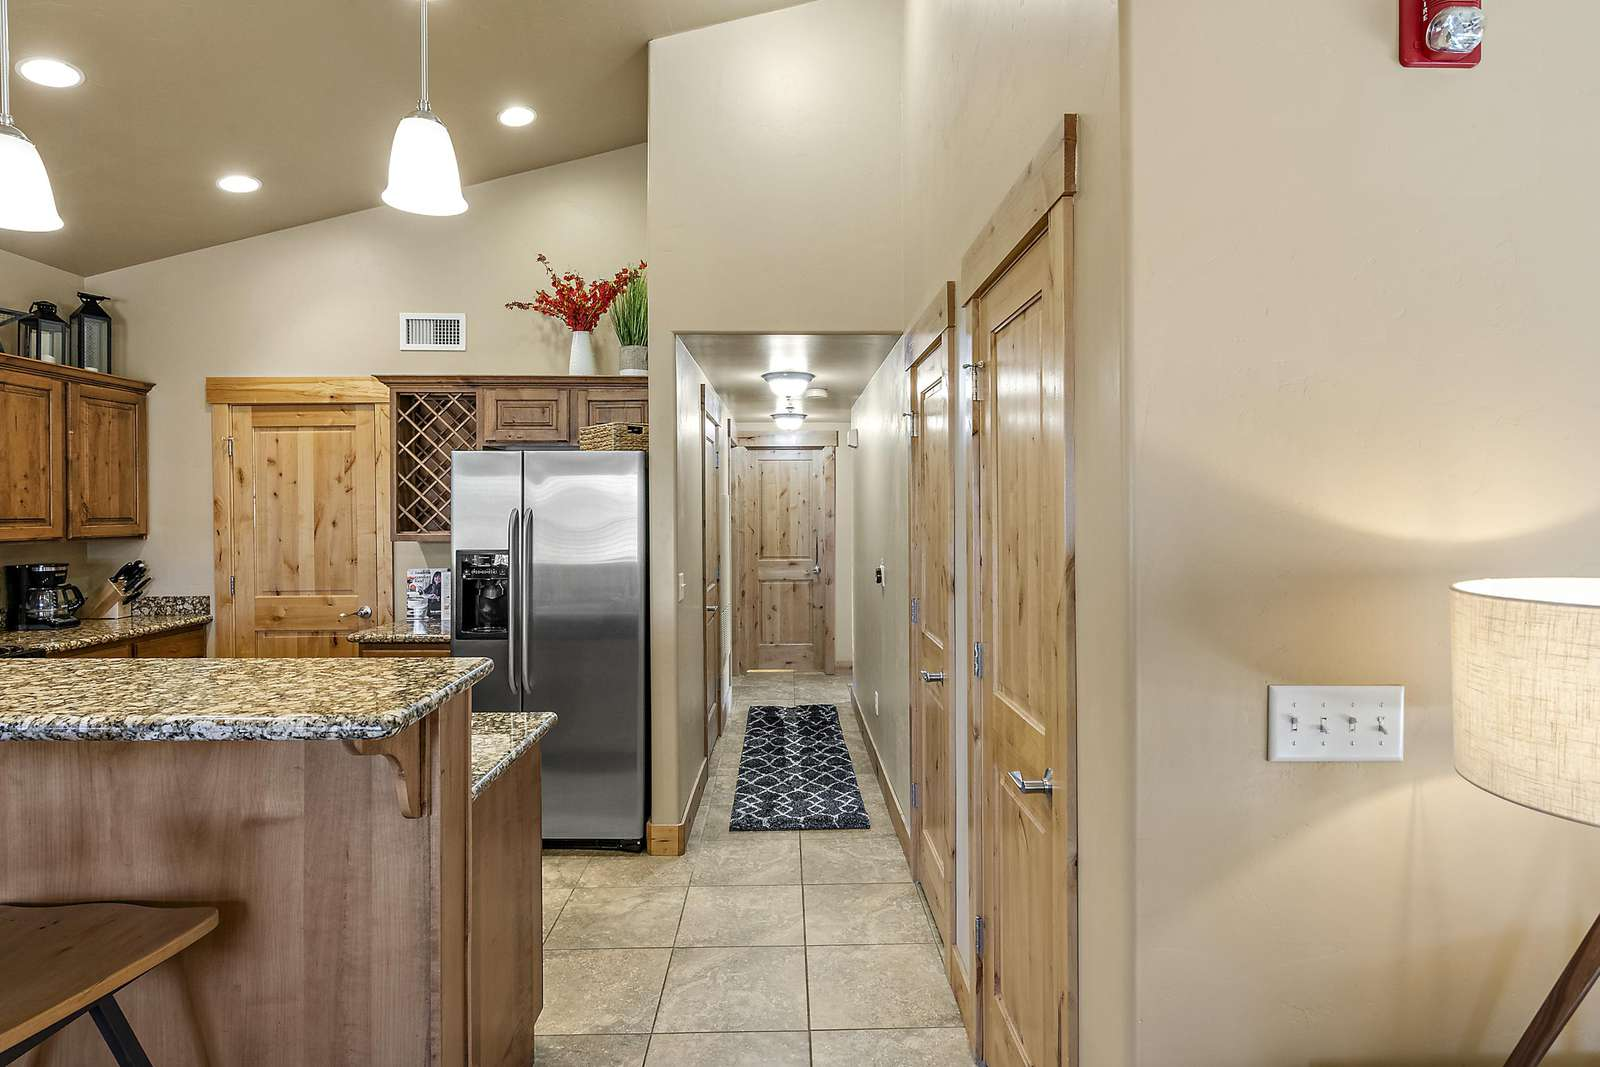 Hallway leading to guest and twin bedrooms with guest bathroom